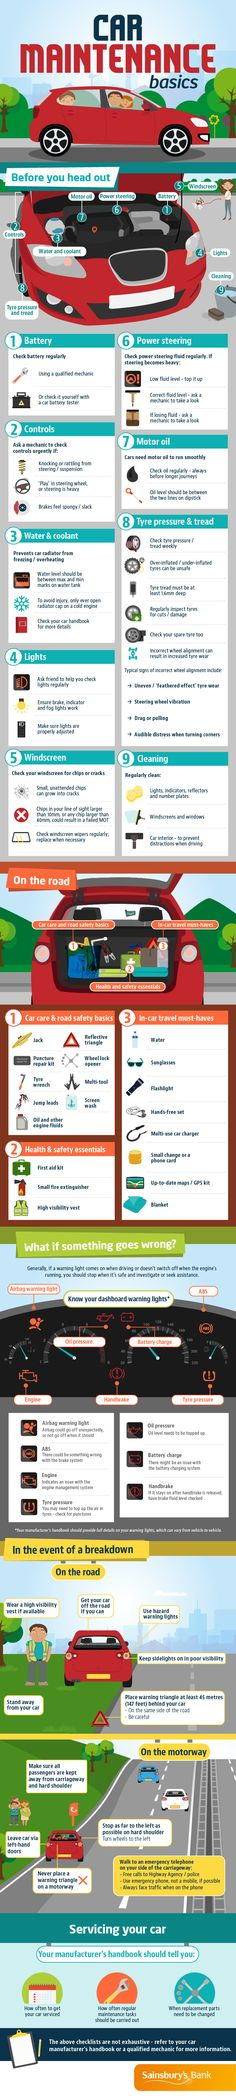 A Visual Guide to Car Maintenance #infographic